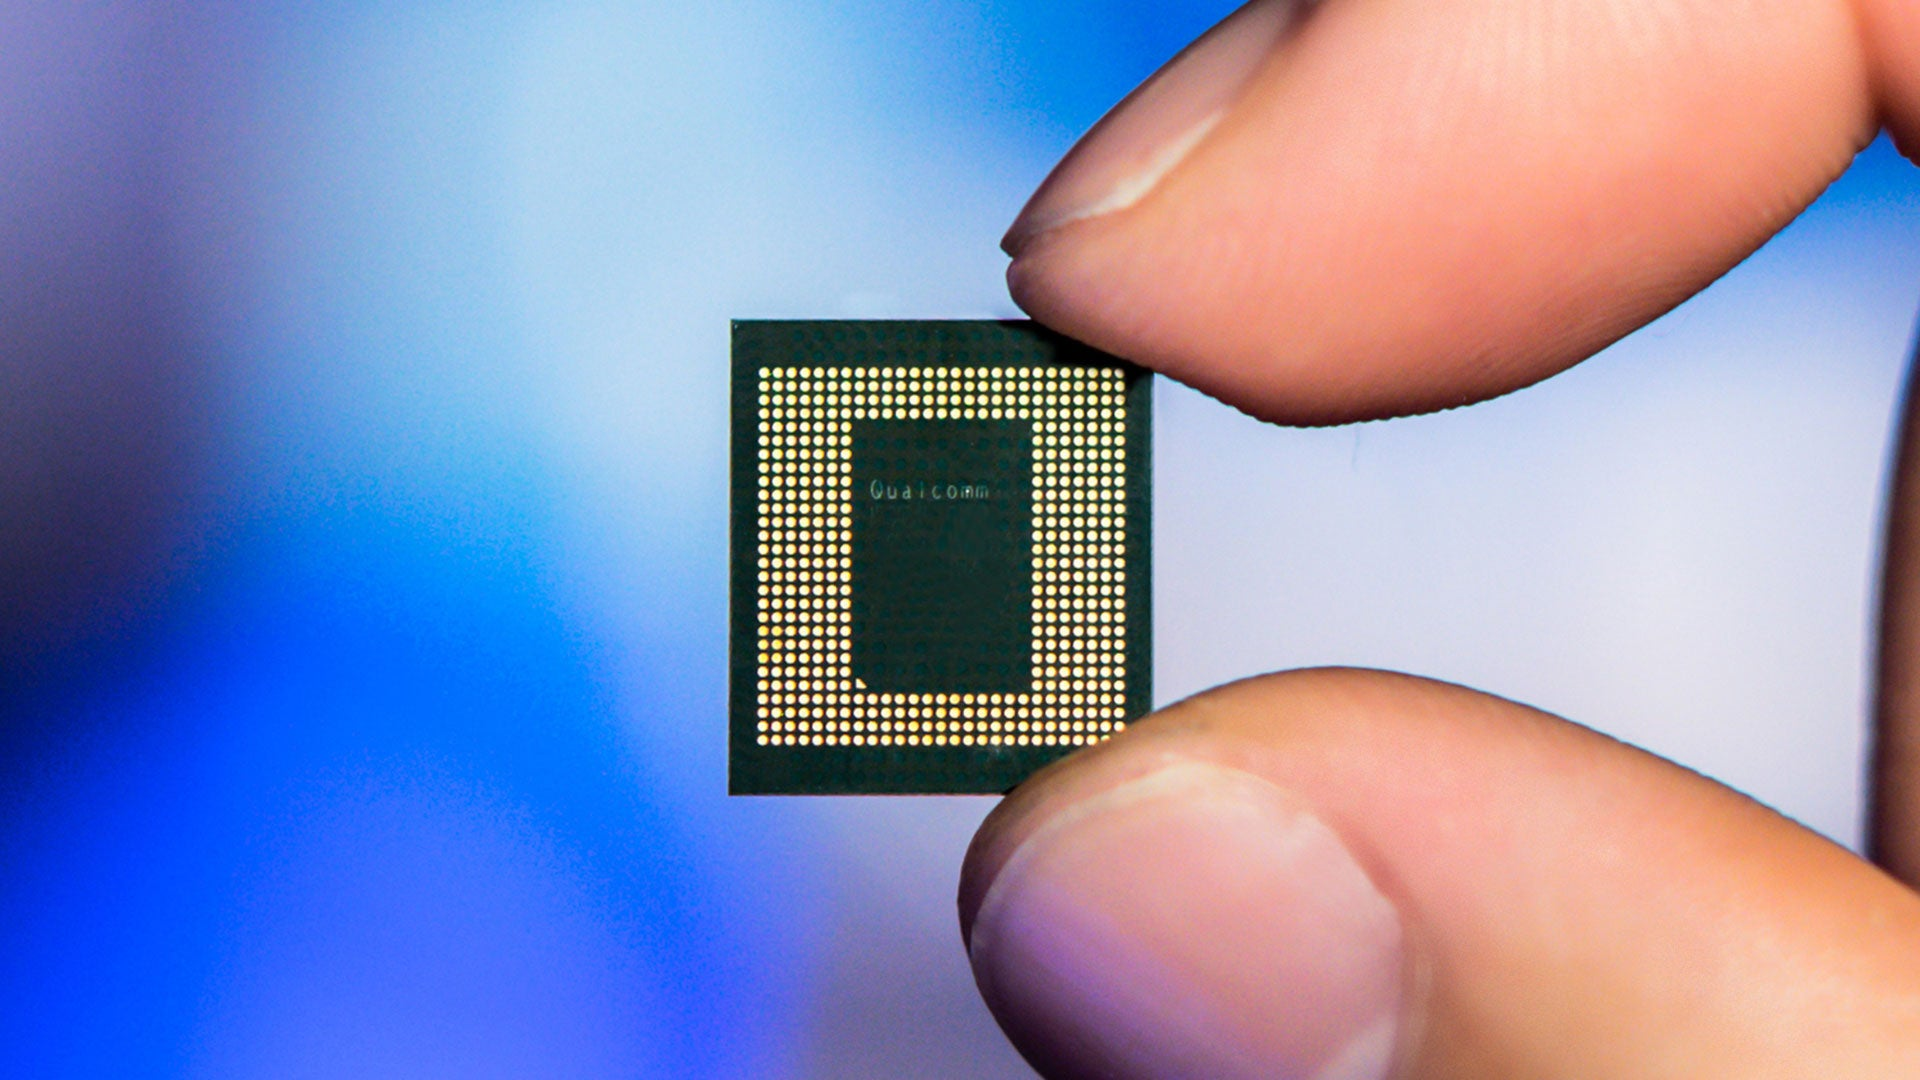 Everything To Know About Qualcomm's Next Flagship Phone Chip: The Snapdragon 865